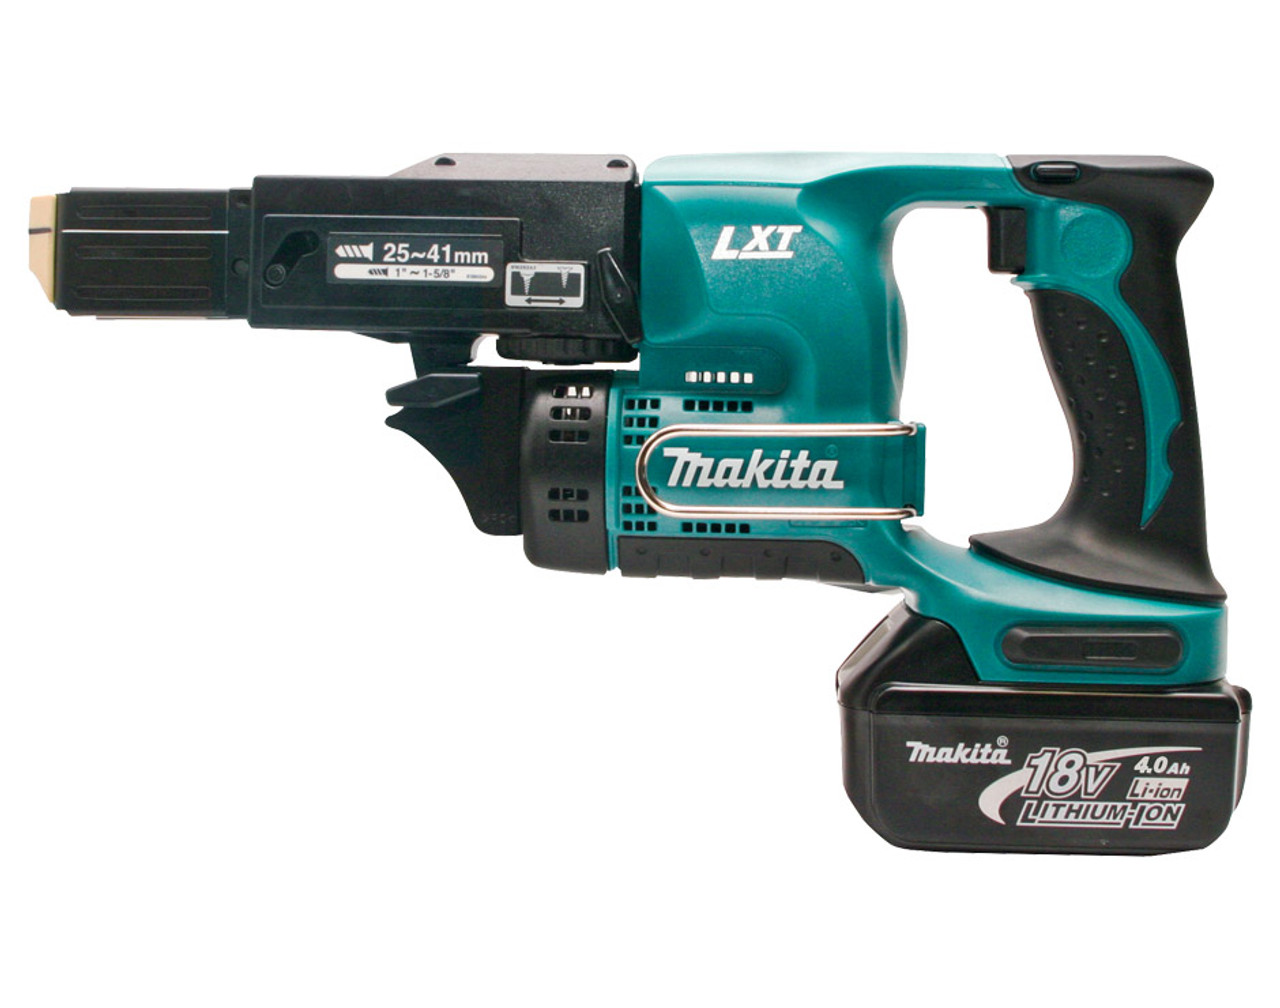 Makita Mobile Auto Feed Screwdriver, 18V Li-Ion, 2 x 4.0Ah Batteries, Charger & Carry Case DFR450RMEX